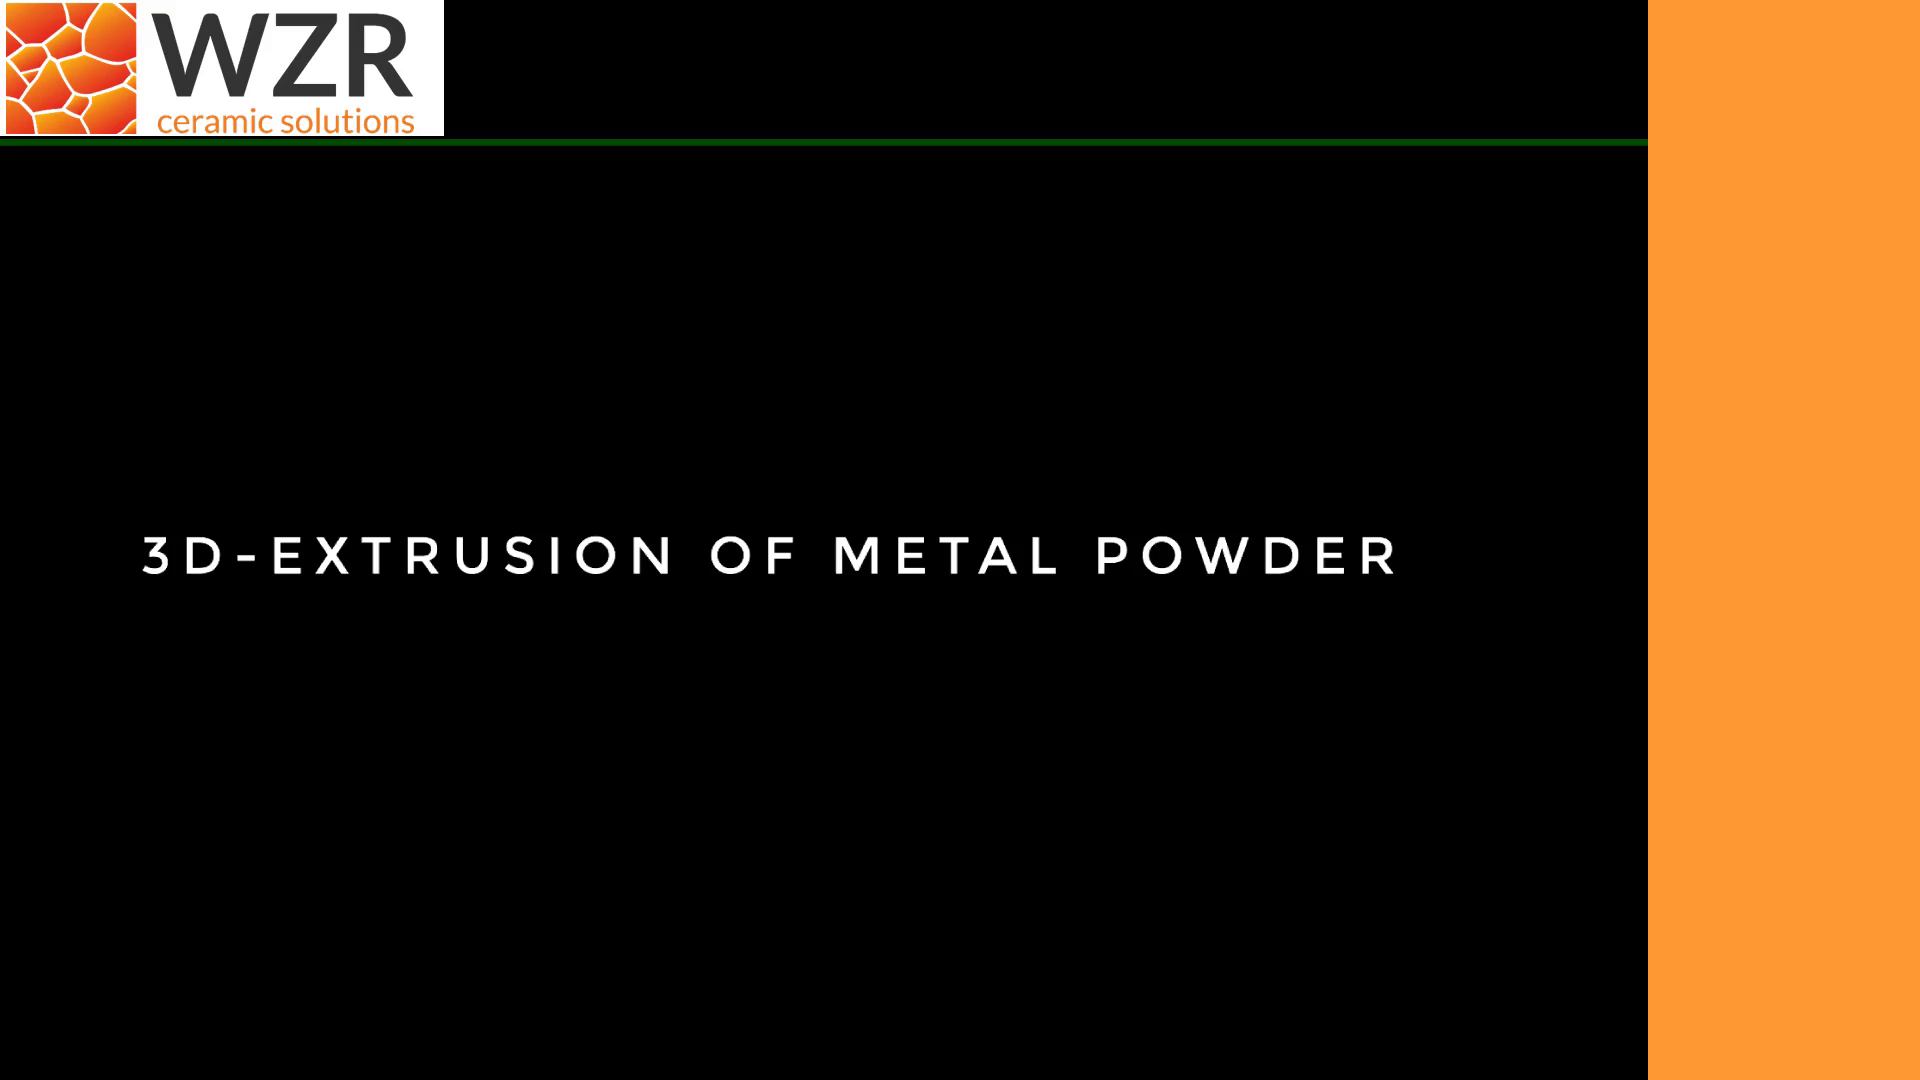 3D-Extrusion of Metal Powder